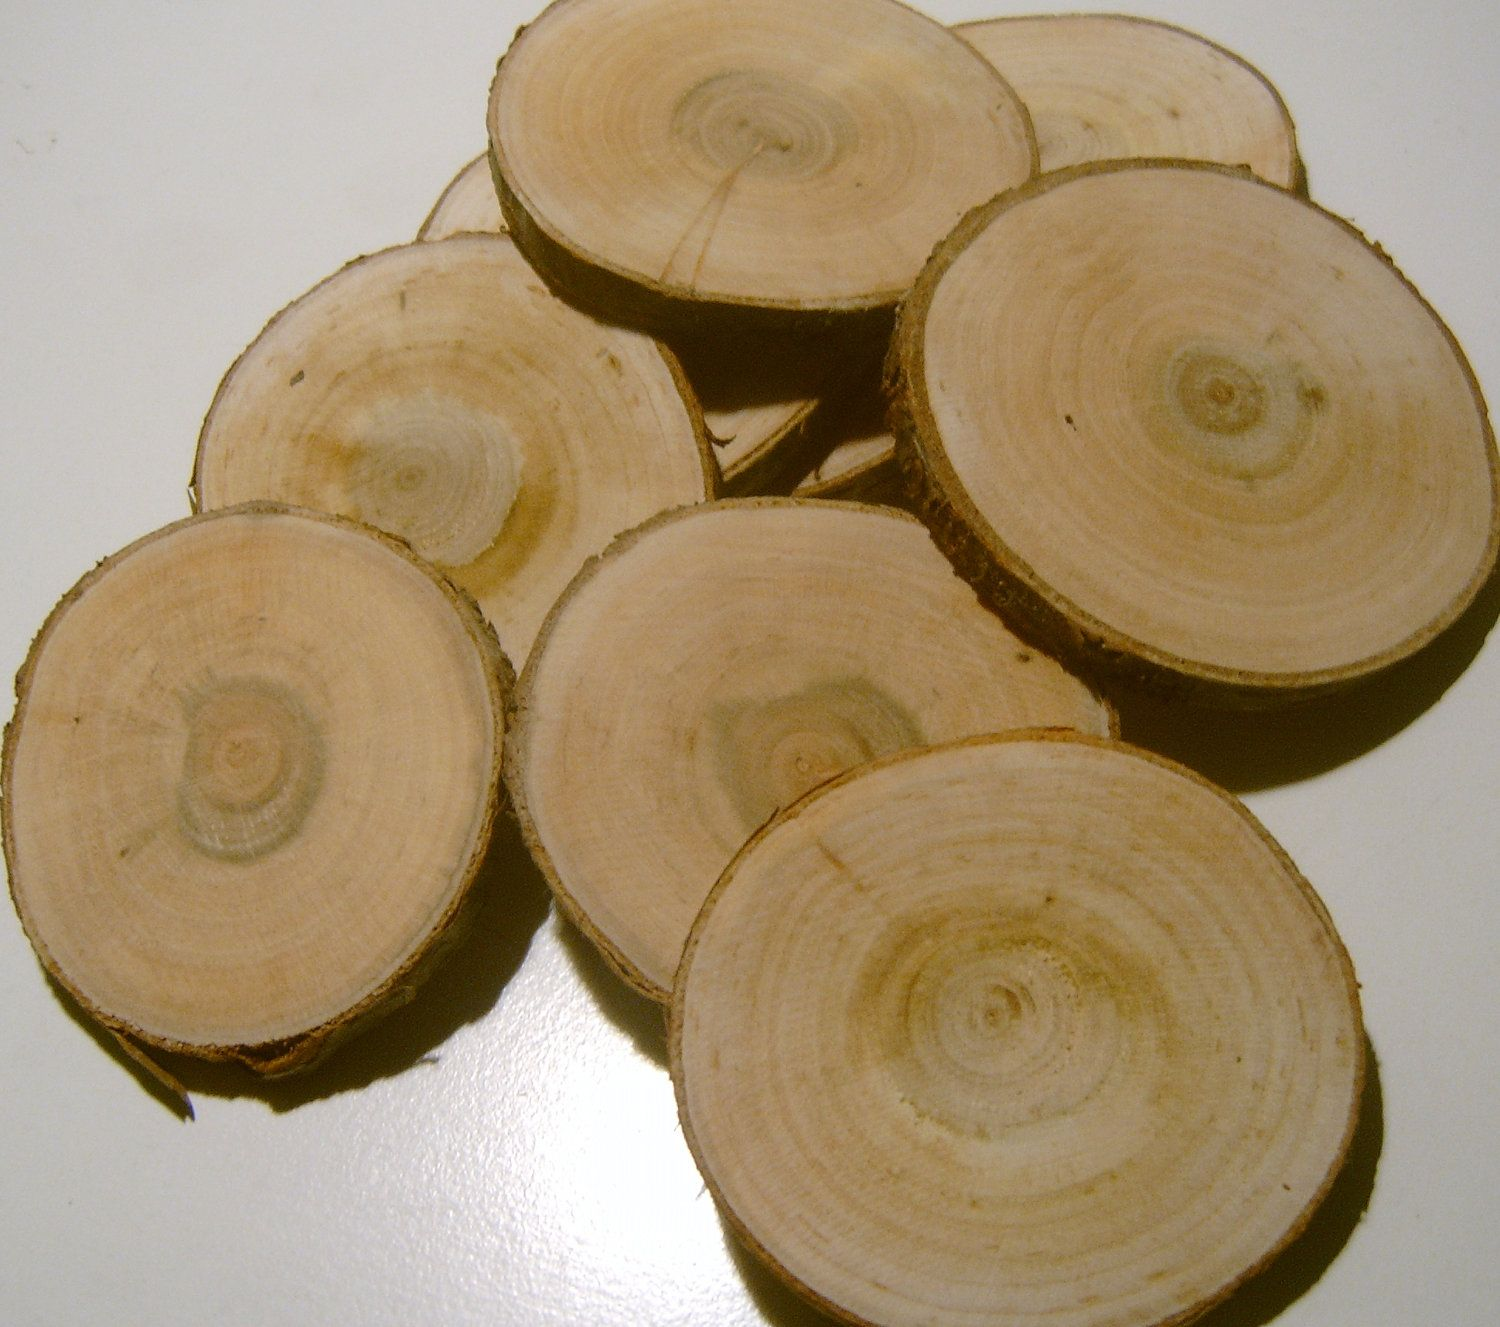 assorted blank tree branch slices to inch diy wedding